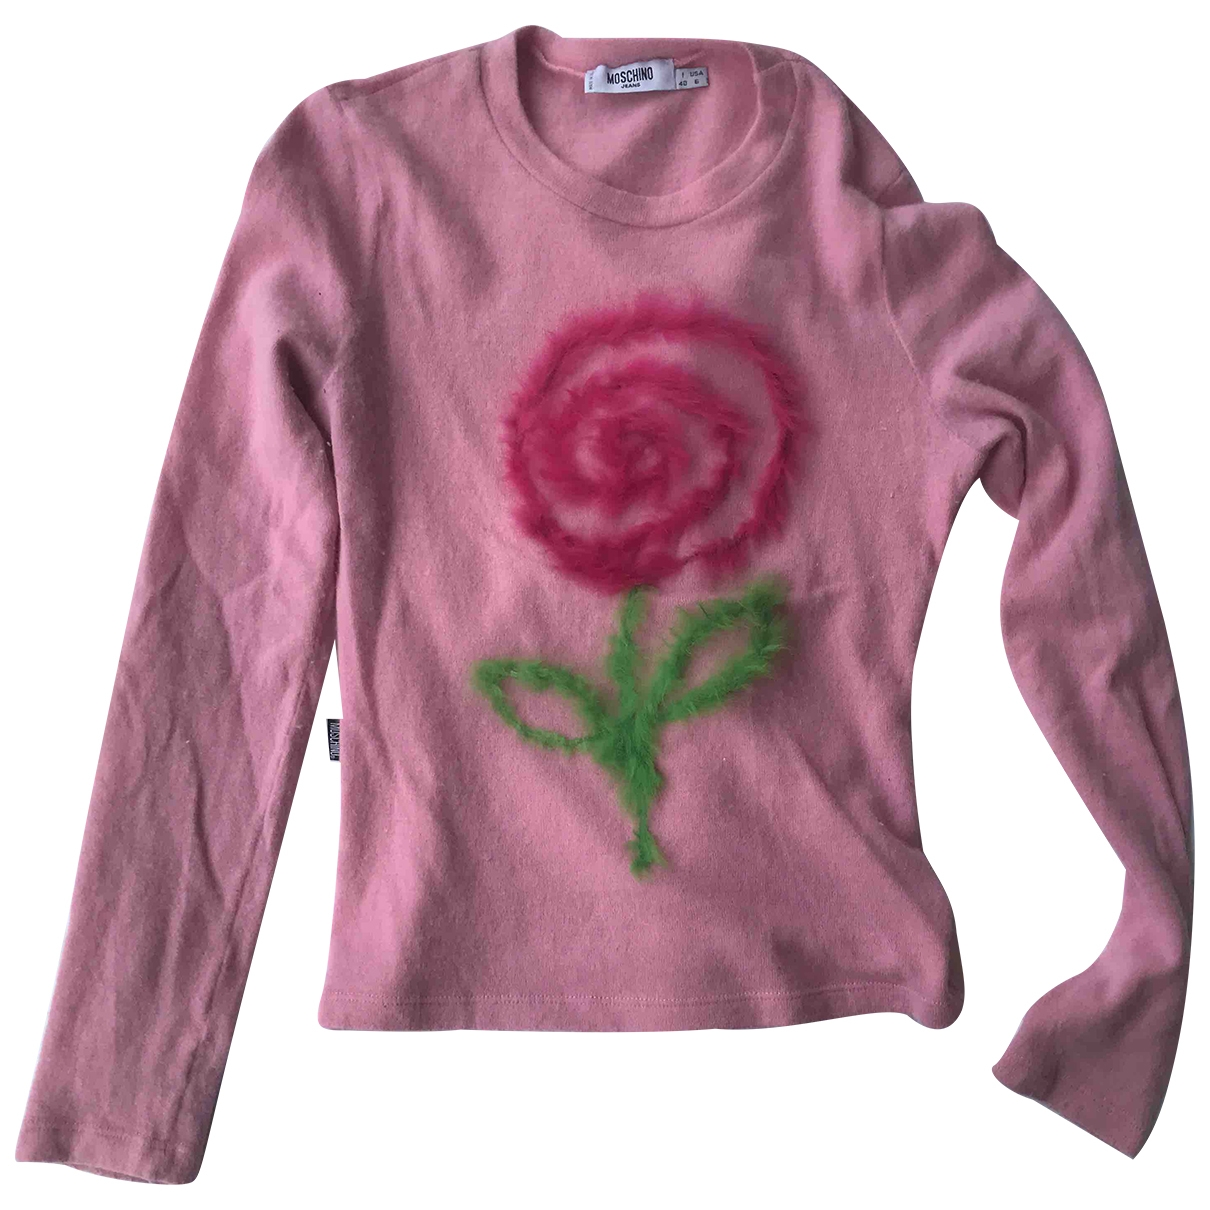 Moschino Cheap And Chic \N Pink Wool  top for Women 40 IT